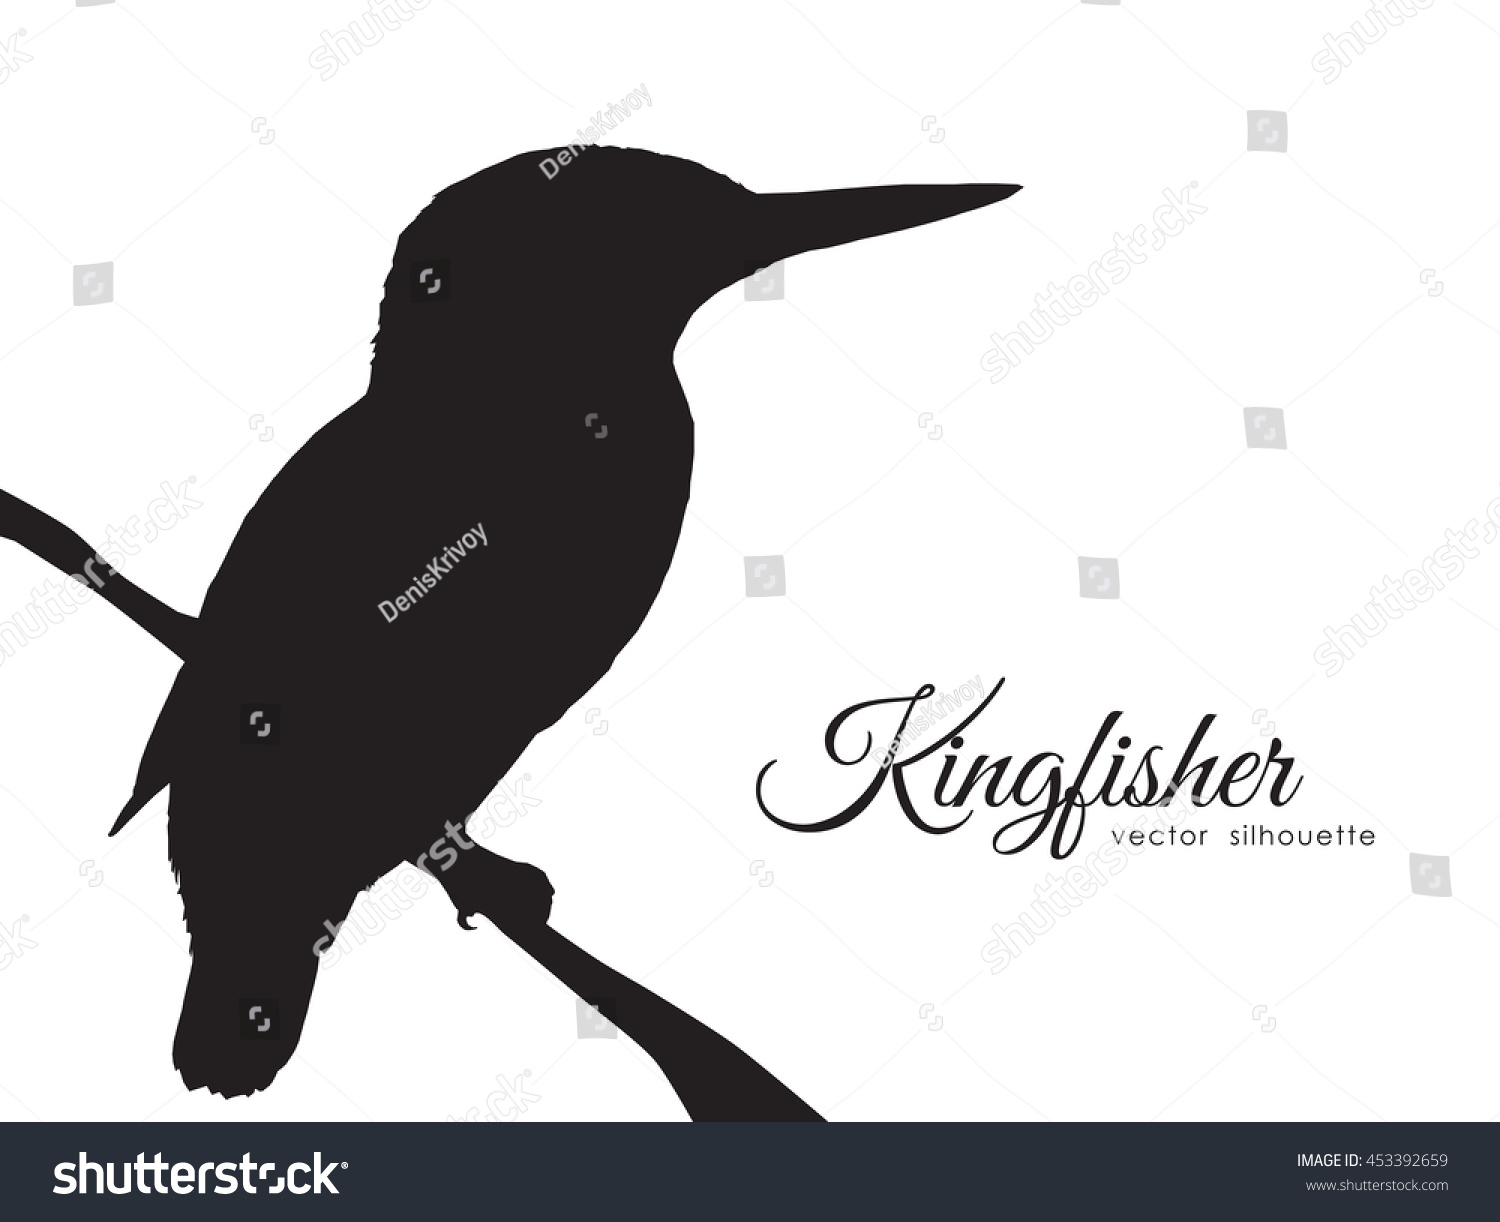 vector illustration silhouette of kingfisher sitting on a dry branch